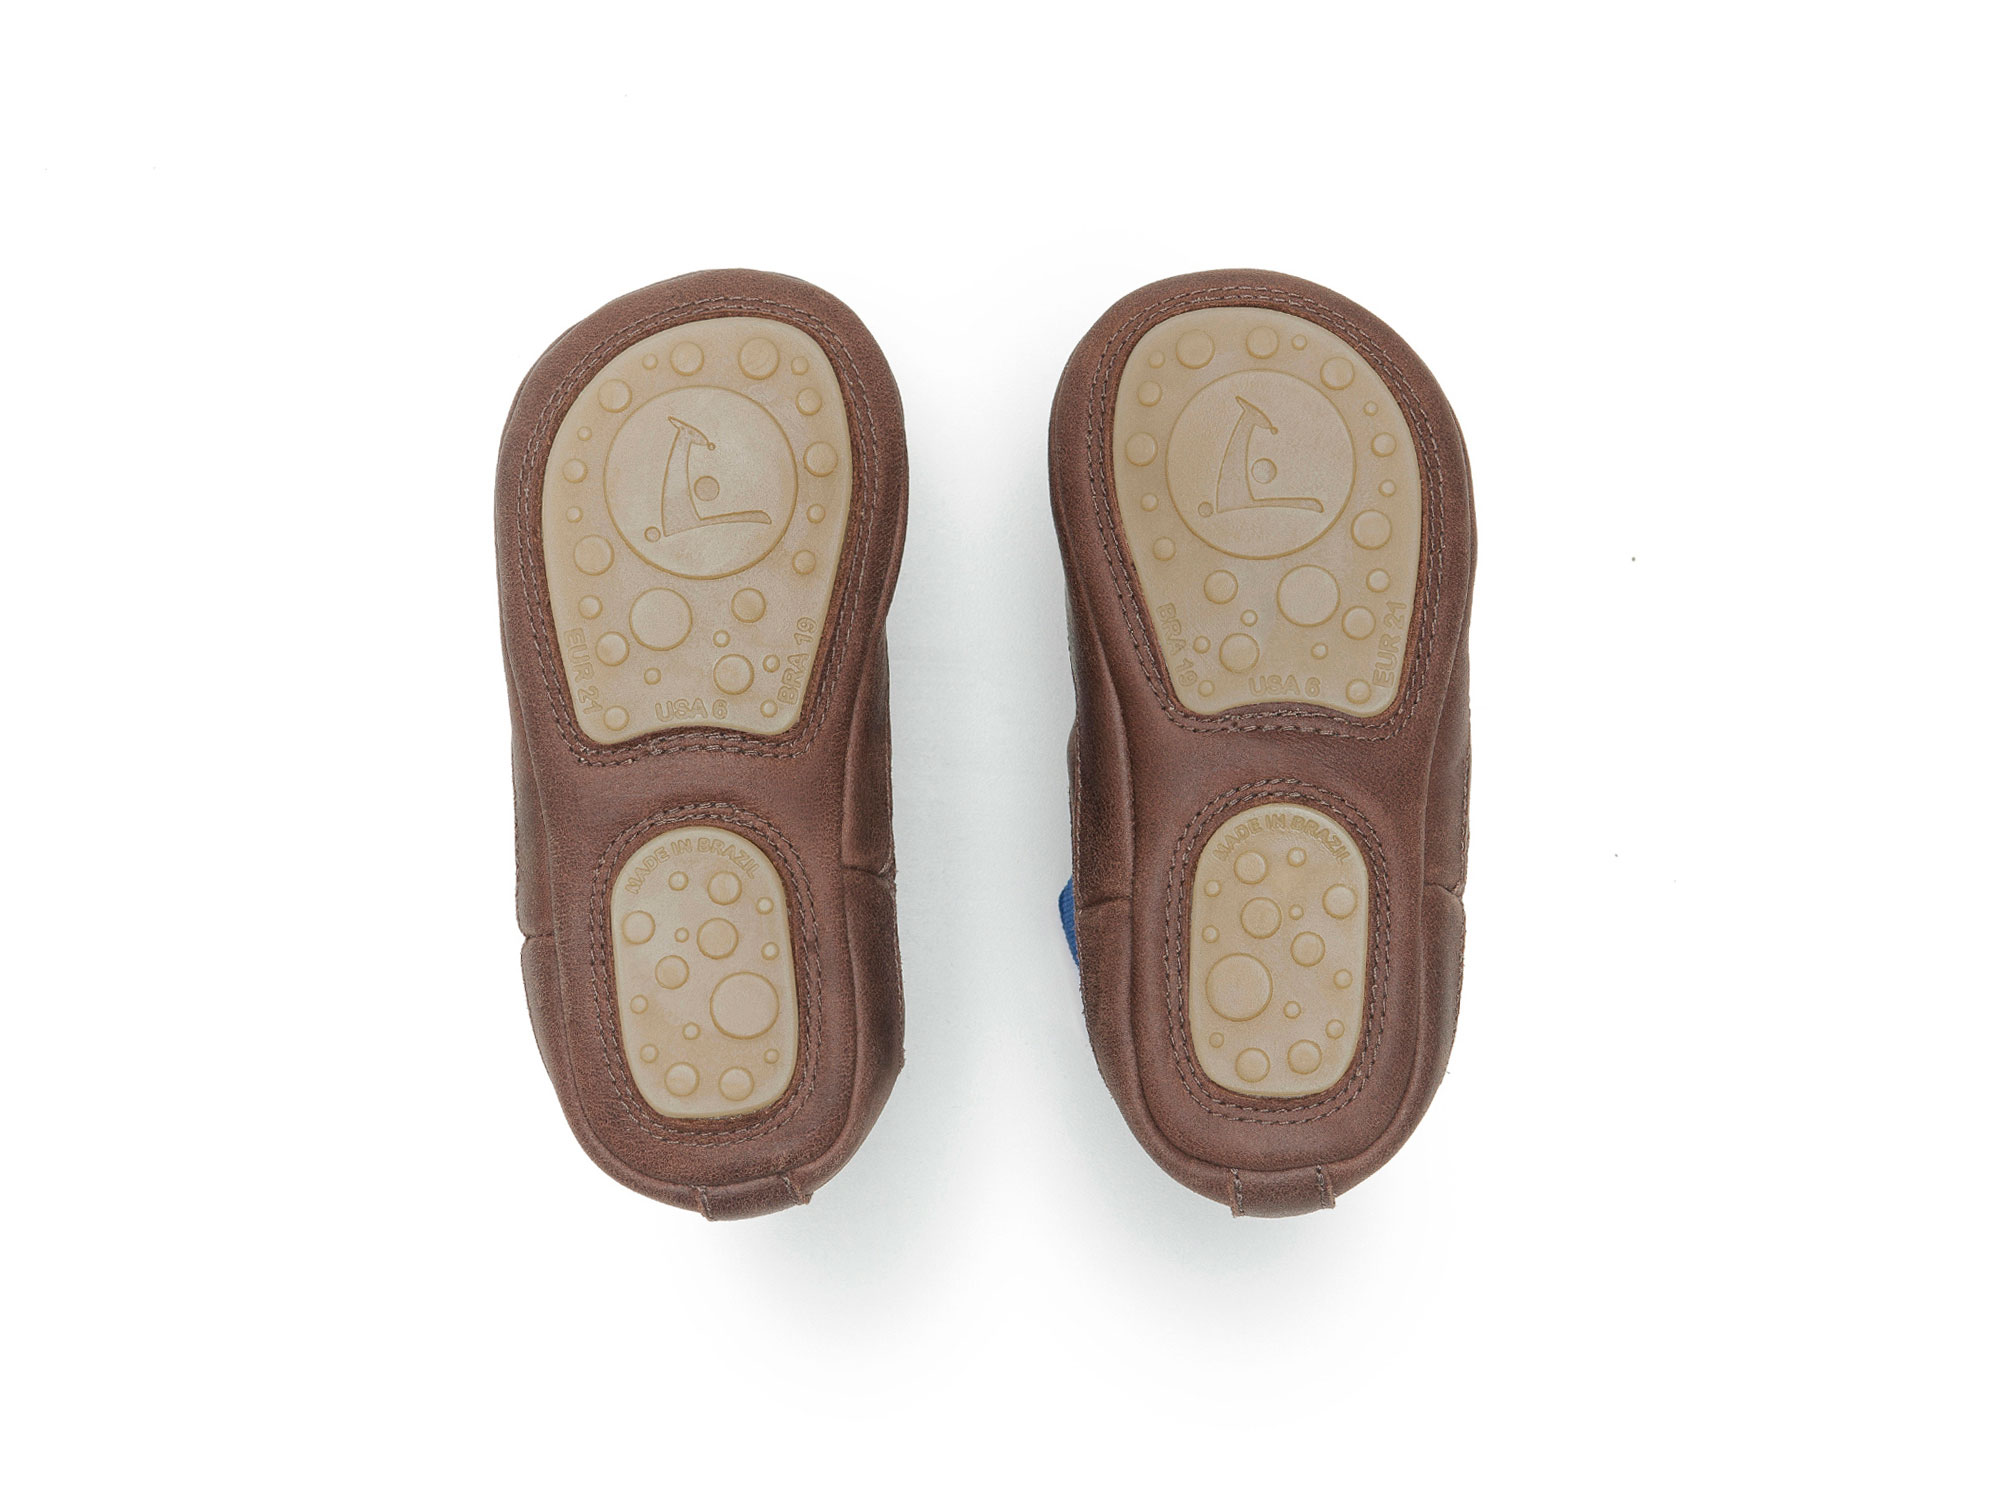 Boot Kicky Old Tan/ Royal Baby for ages 0 to 2 years - 3